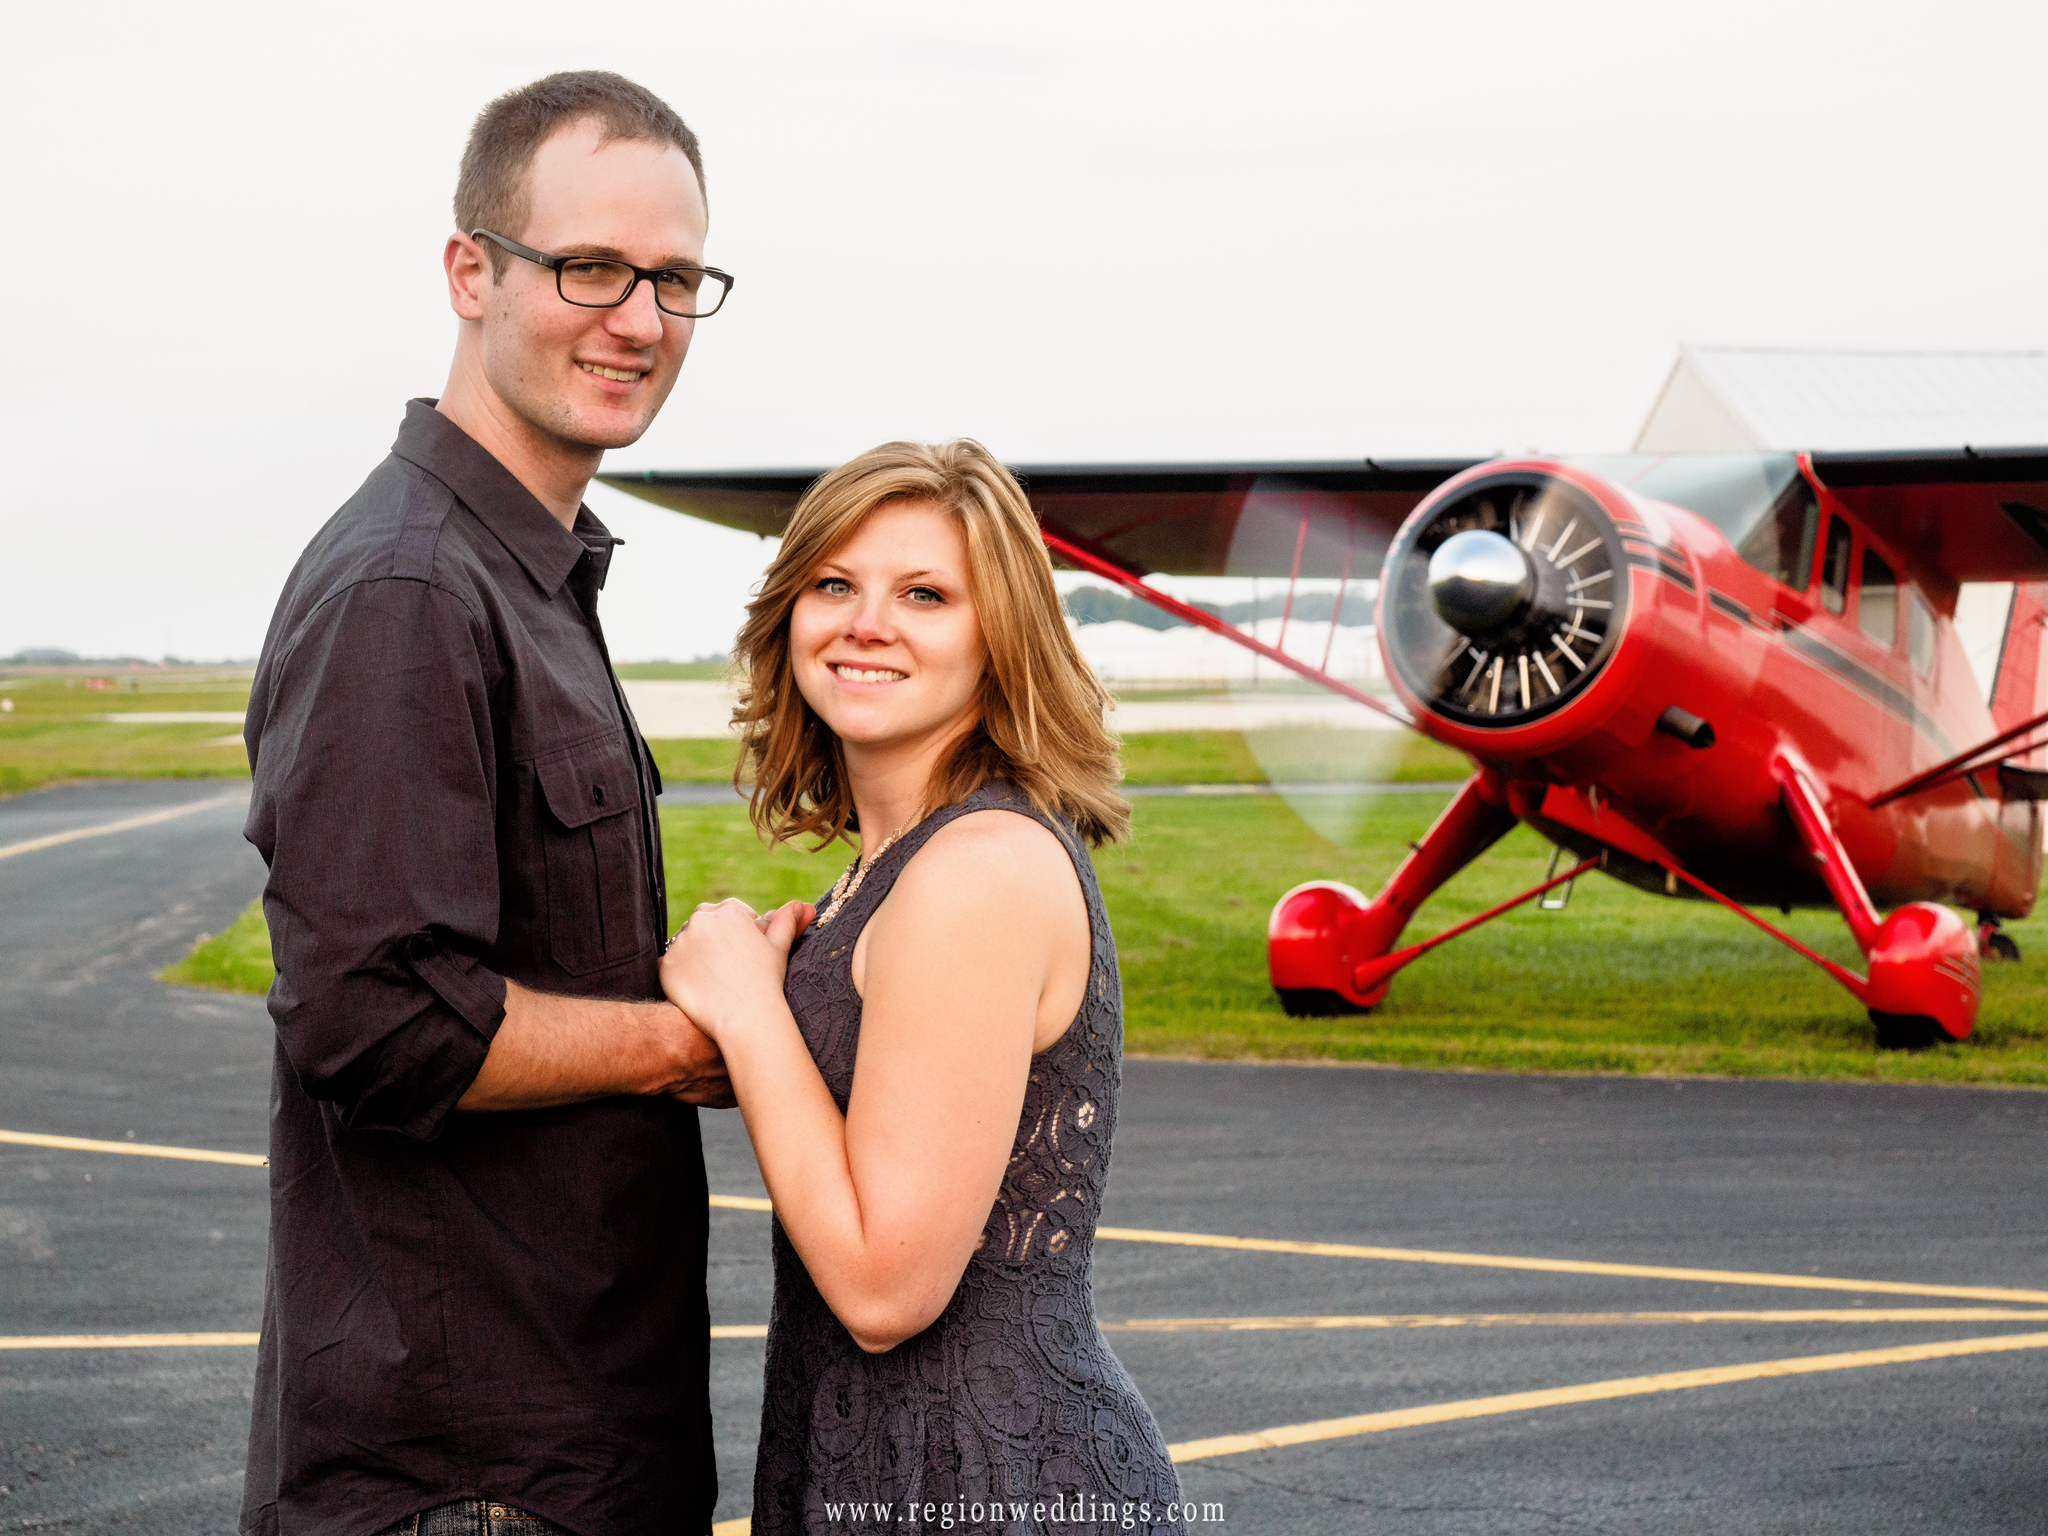 A young couple in front of a vintage airplane with it's propellors spinning.